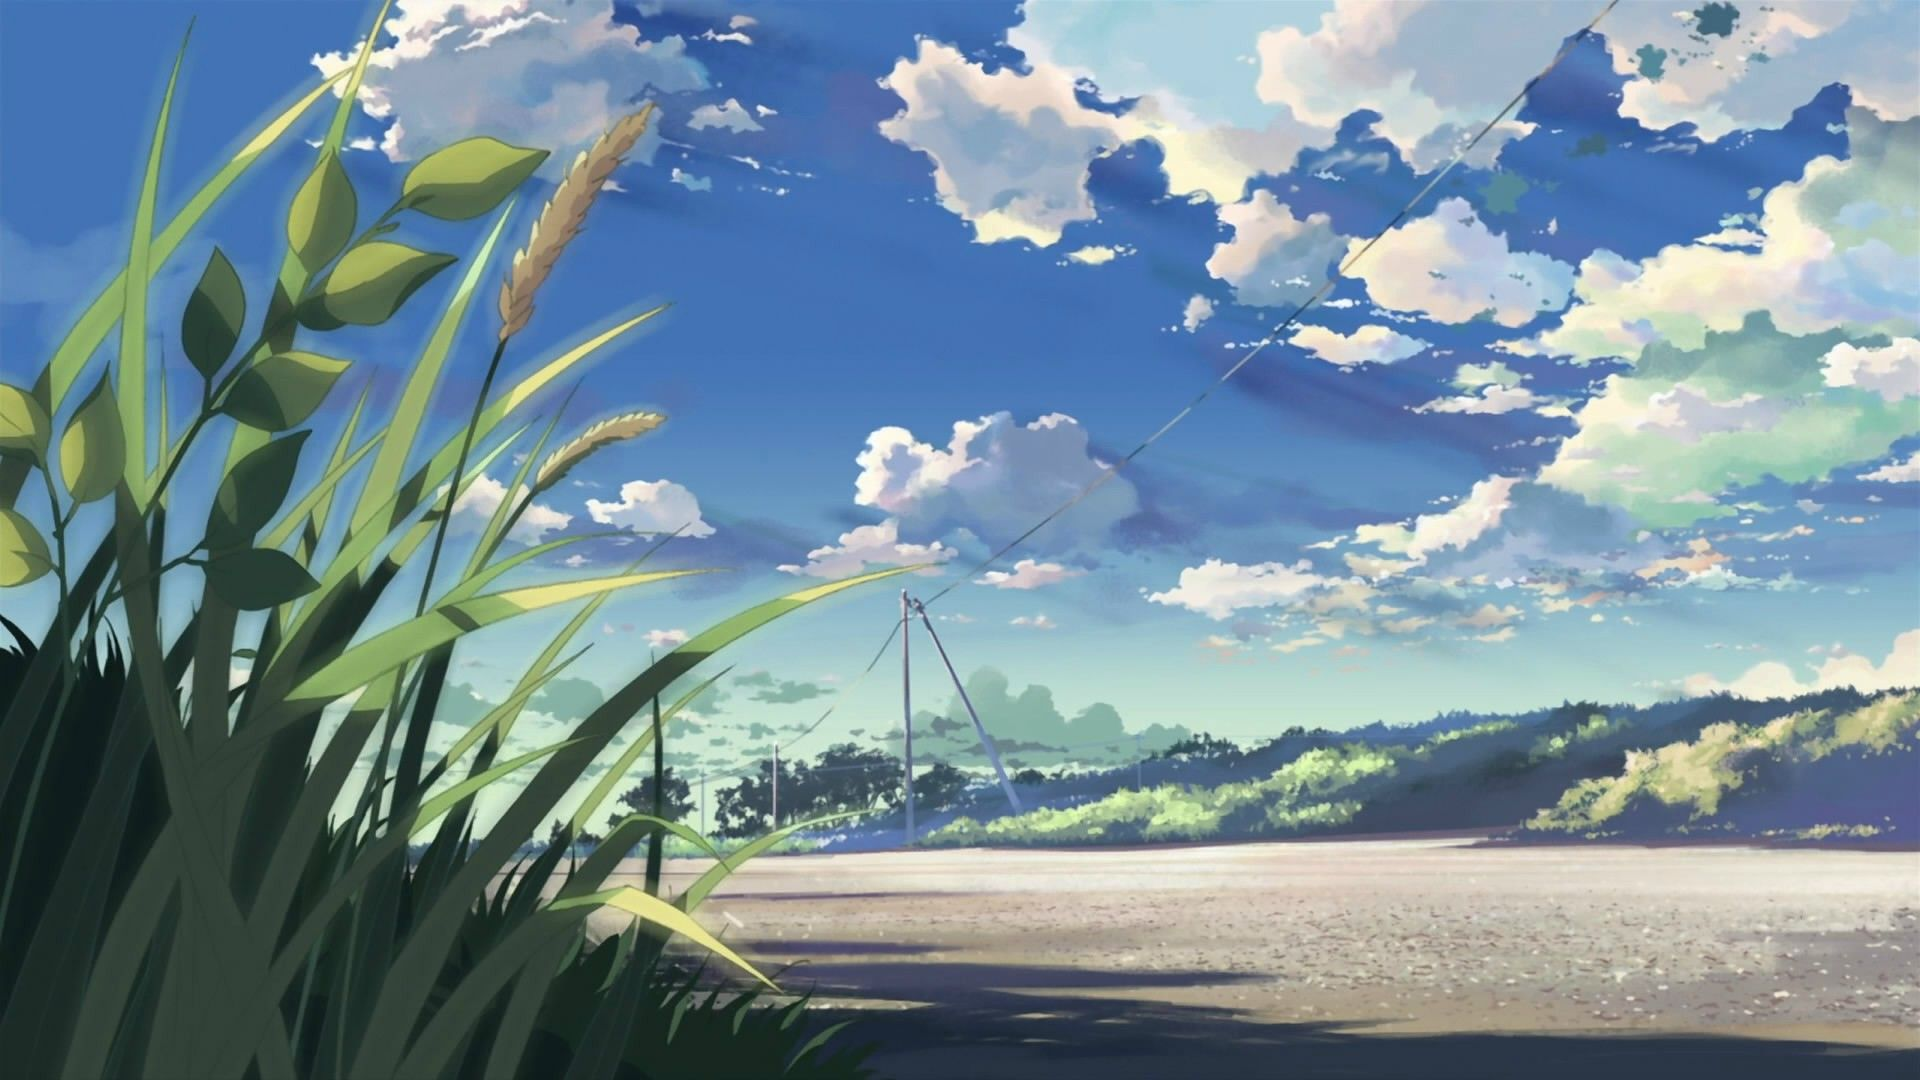 Aesthetic Anime Laptop Wallpapers Top Free Aesthetic Anime Laptop Backgrounds Wallpaperaccess